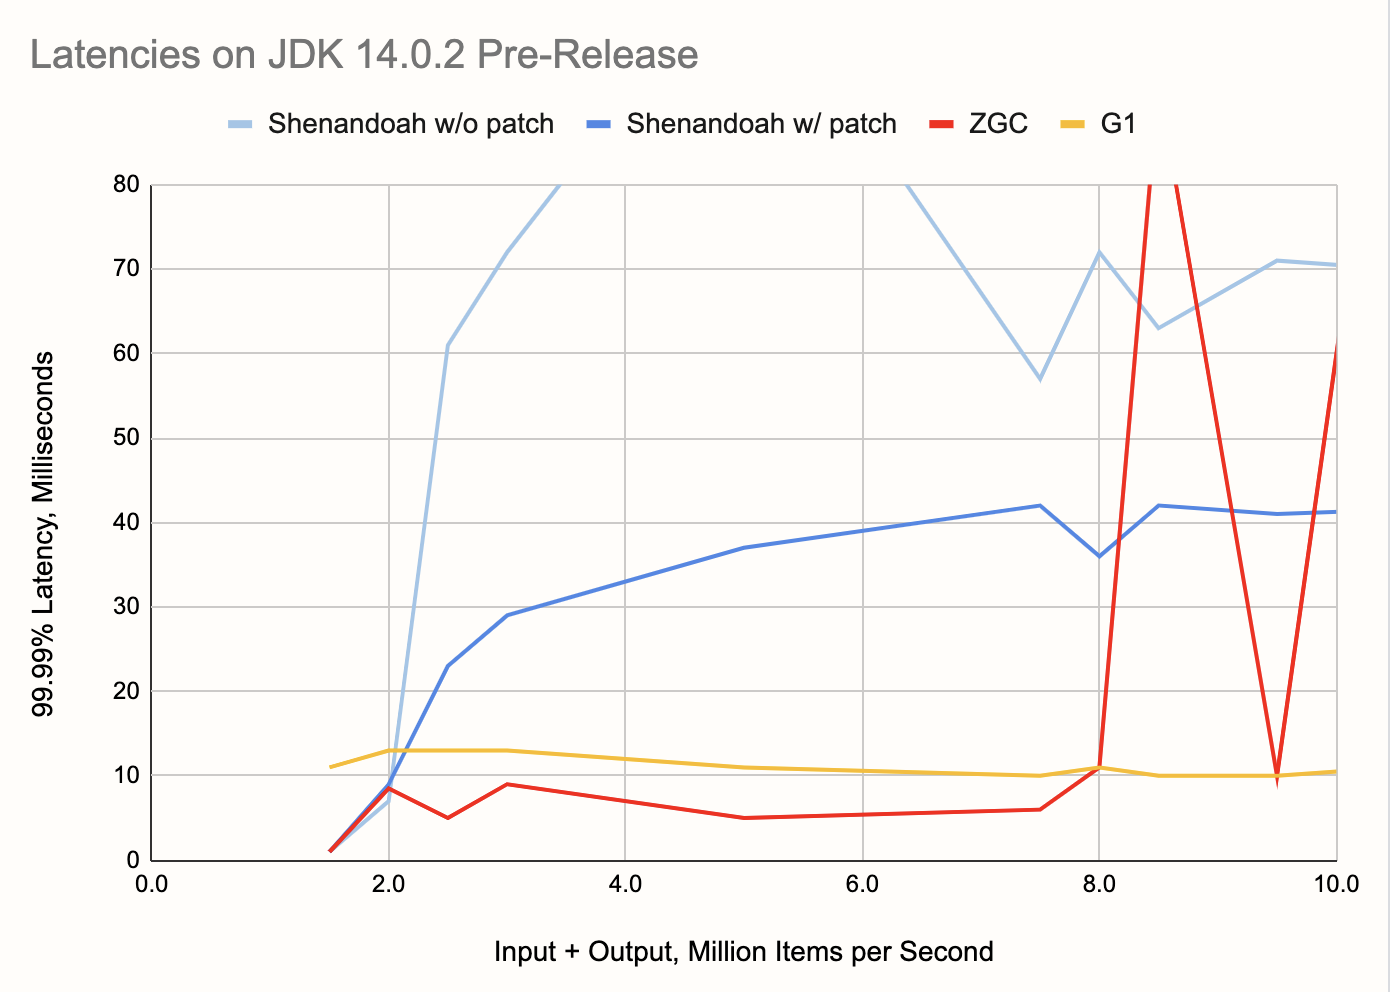 Latencies on JDK 14.0.2 pre-release